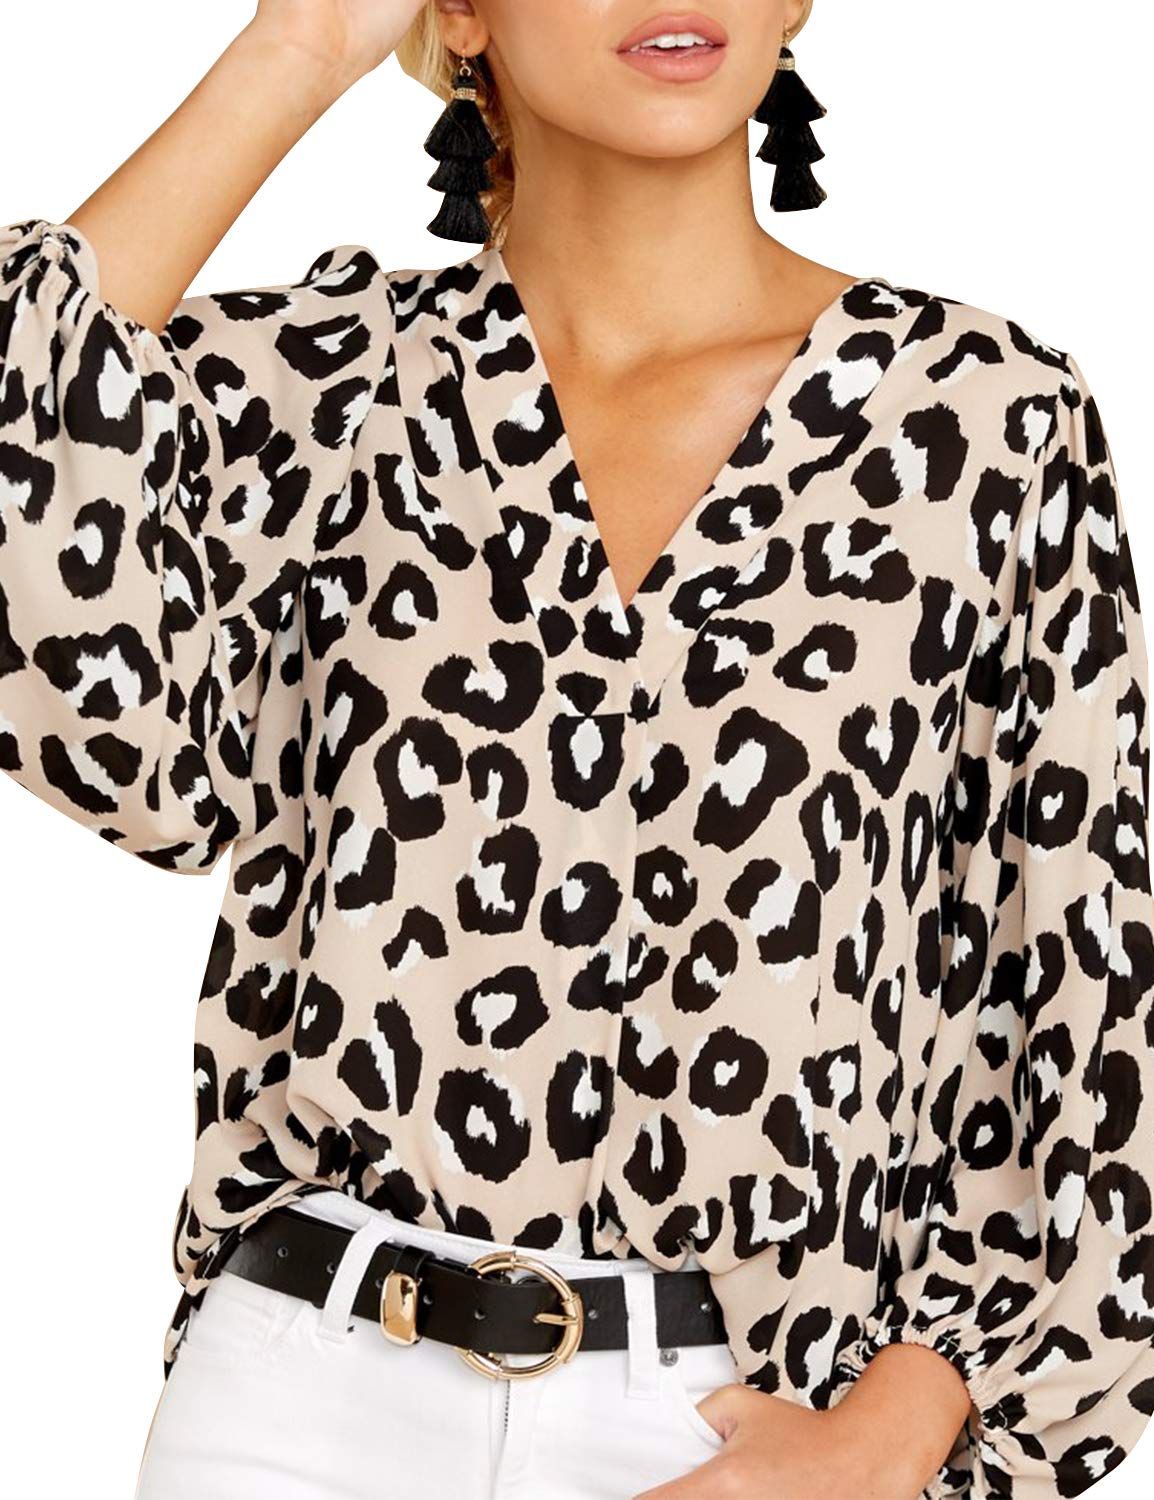 BMJL Women's Leopard Print Top Loose Blouse Puff Sleeve V Neck T Shirt